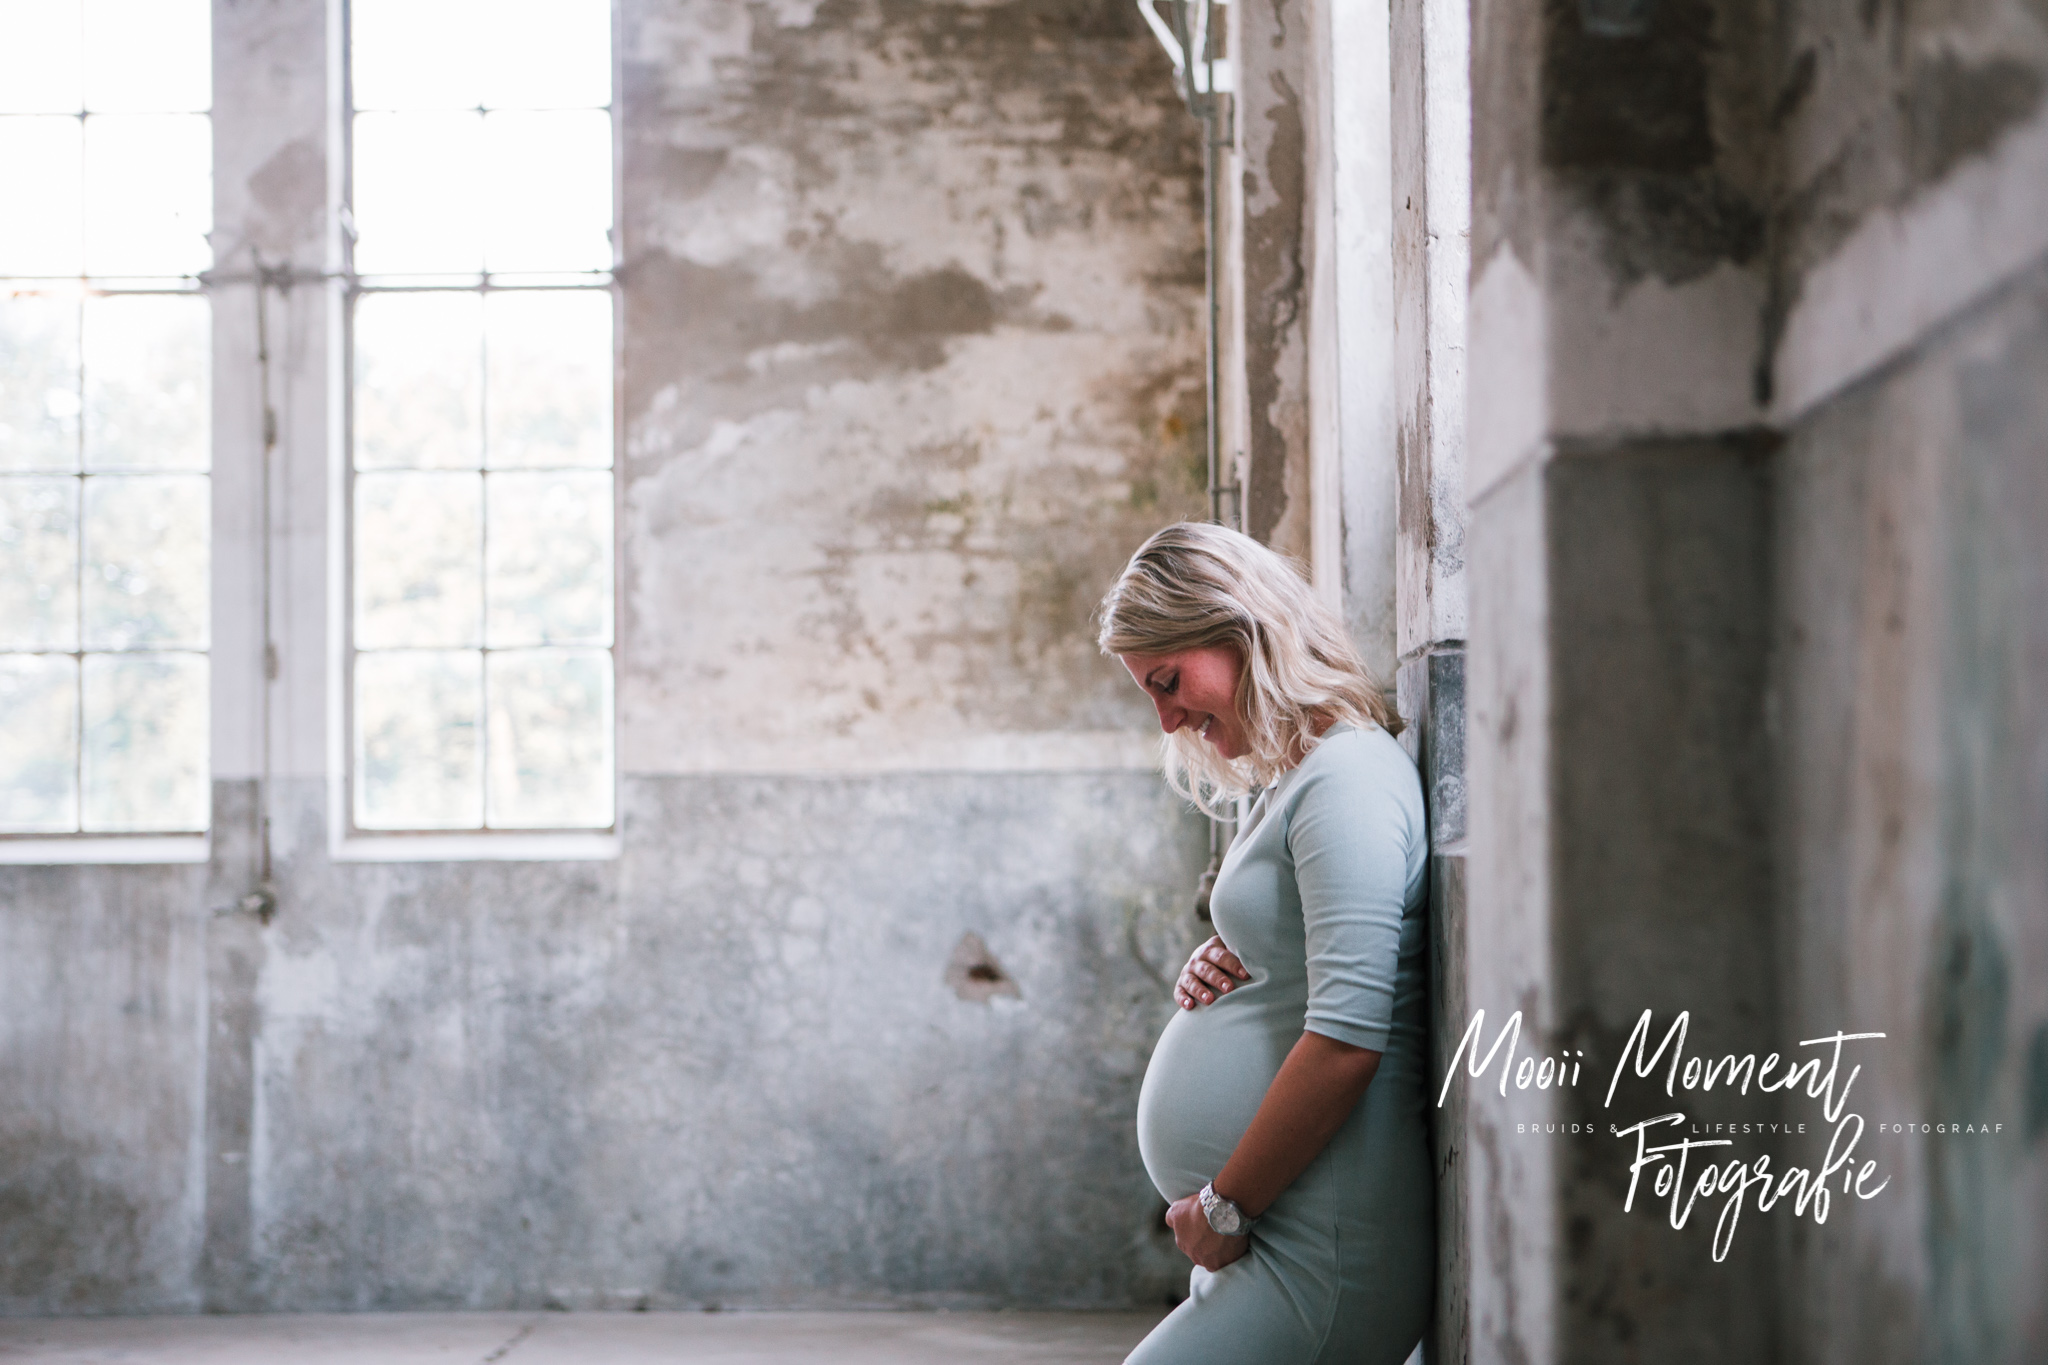 Maternity shoot in de oude melk fabriek